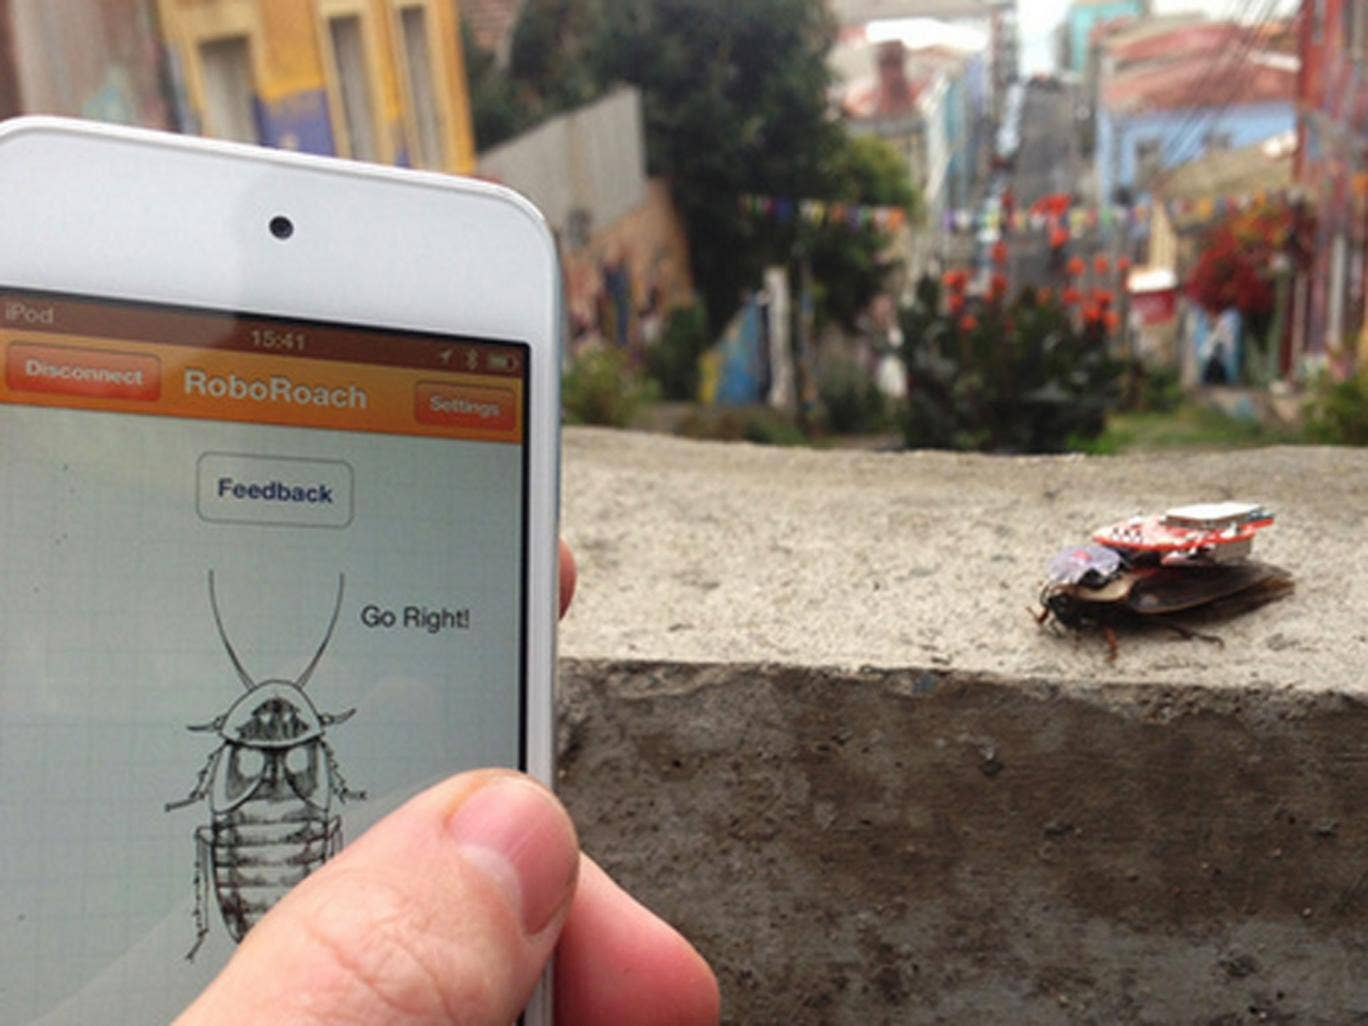 Should people control animals using smartphone apps?